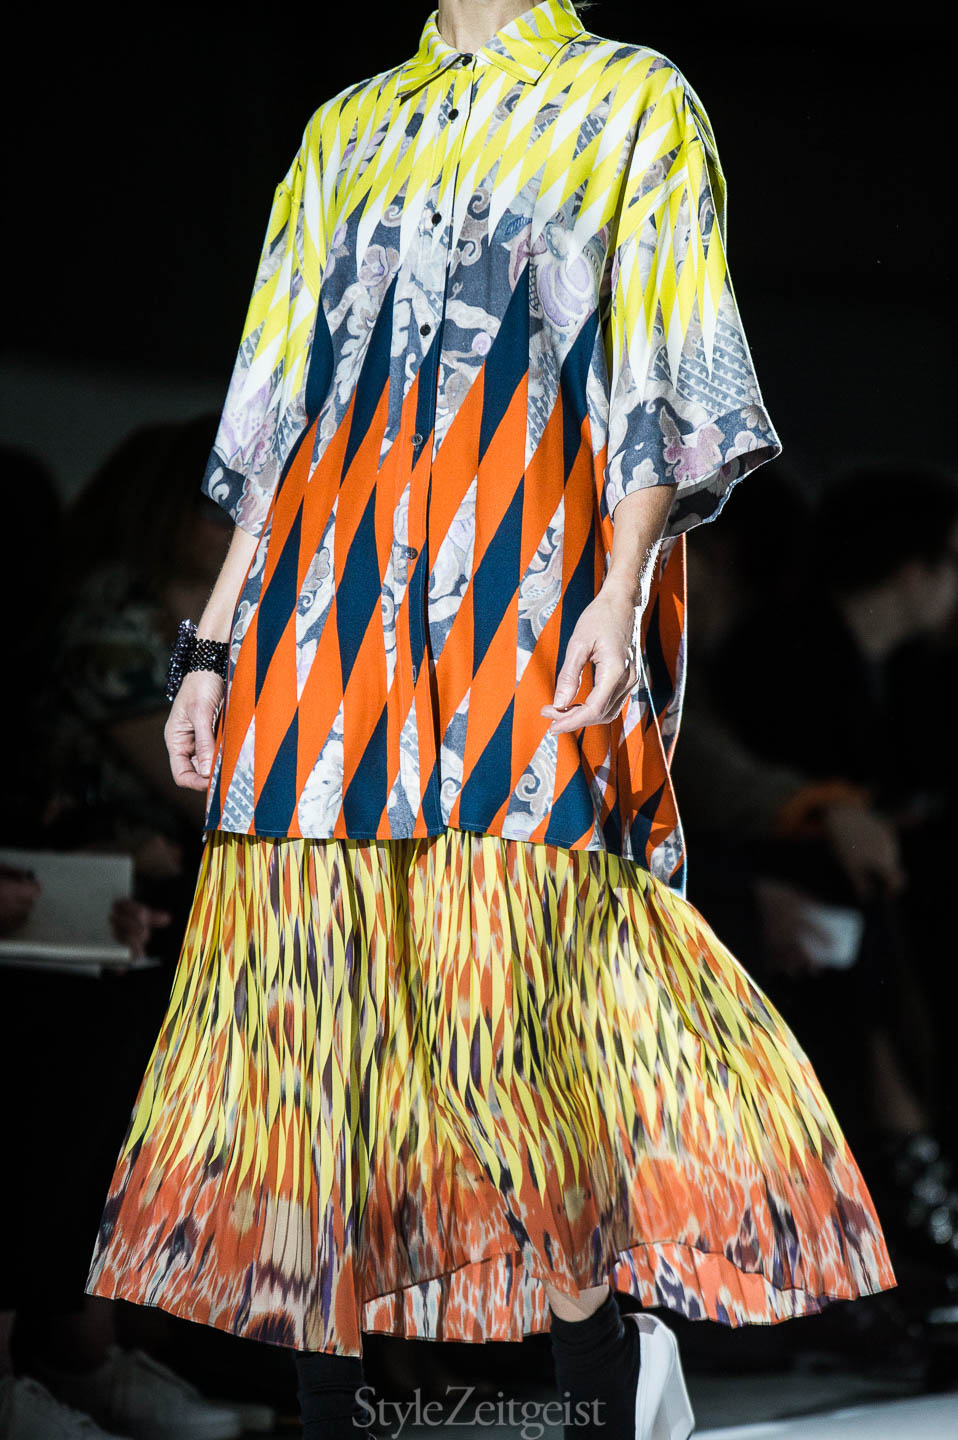 StyleZeitgeist Dries Van Noten F/W17 Women's - Paris Fashion    StyleZeitgeist Dries Van Noten F/W17 Women's - Paris Fashion    StyleZeitgeist Dries Van Noten F/W17 Women's - Paris Fashion    StyleZeitgeist Dries Van Noten F/W17 Women's - Paris Fashion    StyleZeitgeist Dries Van Noten F/W17 Women's - Paris Fashion    StyleZeitgeist Dries Van Noten F/W17 Women's - Paris Fashion    StyleZeitgeist Dries Van Noten F/W17 Women's - Paris Fashion    StyleZeitgeist Dries Van Noten F/W17 Women's - Paris Fashion    StyleZeitgeist Dries Van Noten F/W17 Women's - Paris Fashion    StyleZeitgeist Dries Van Noten F/W17 Women's - Paris Fashion    StyleZeitgeist Dries Van Noten F/W17 Women's - Paris Fashion    StyleZeitgeist Dries Van Noten F/W17 Women's - Paris Fashion